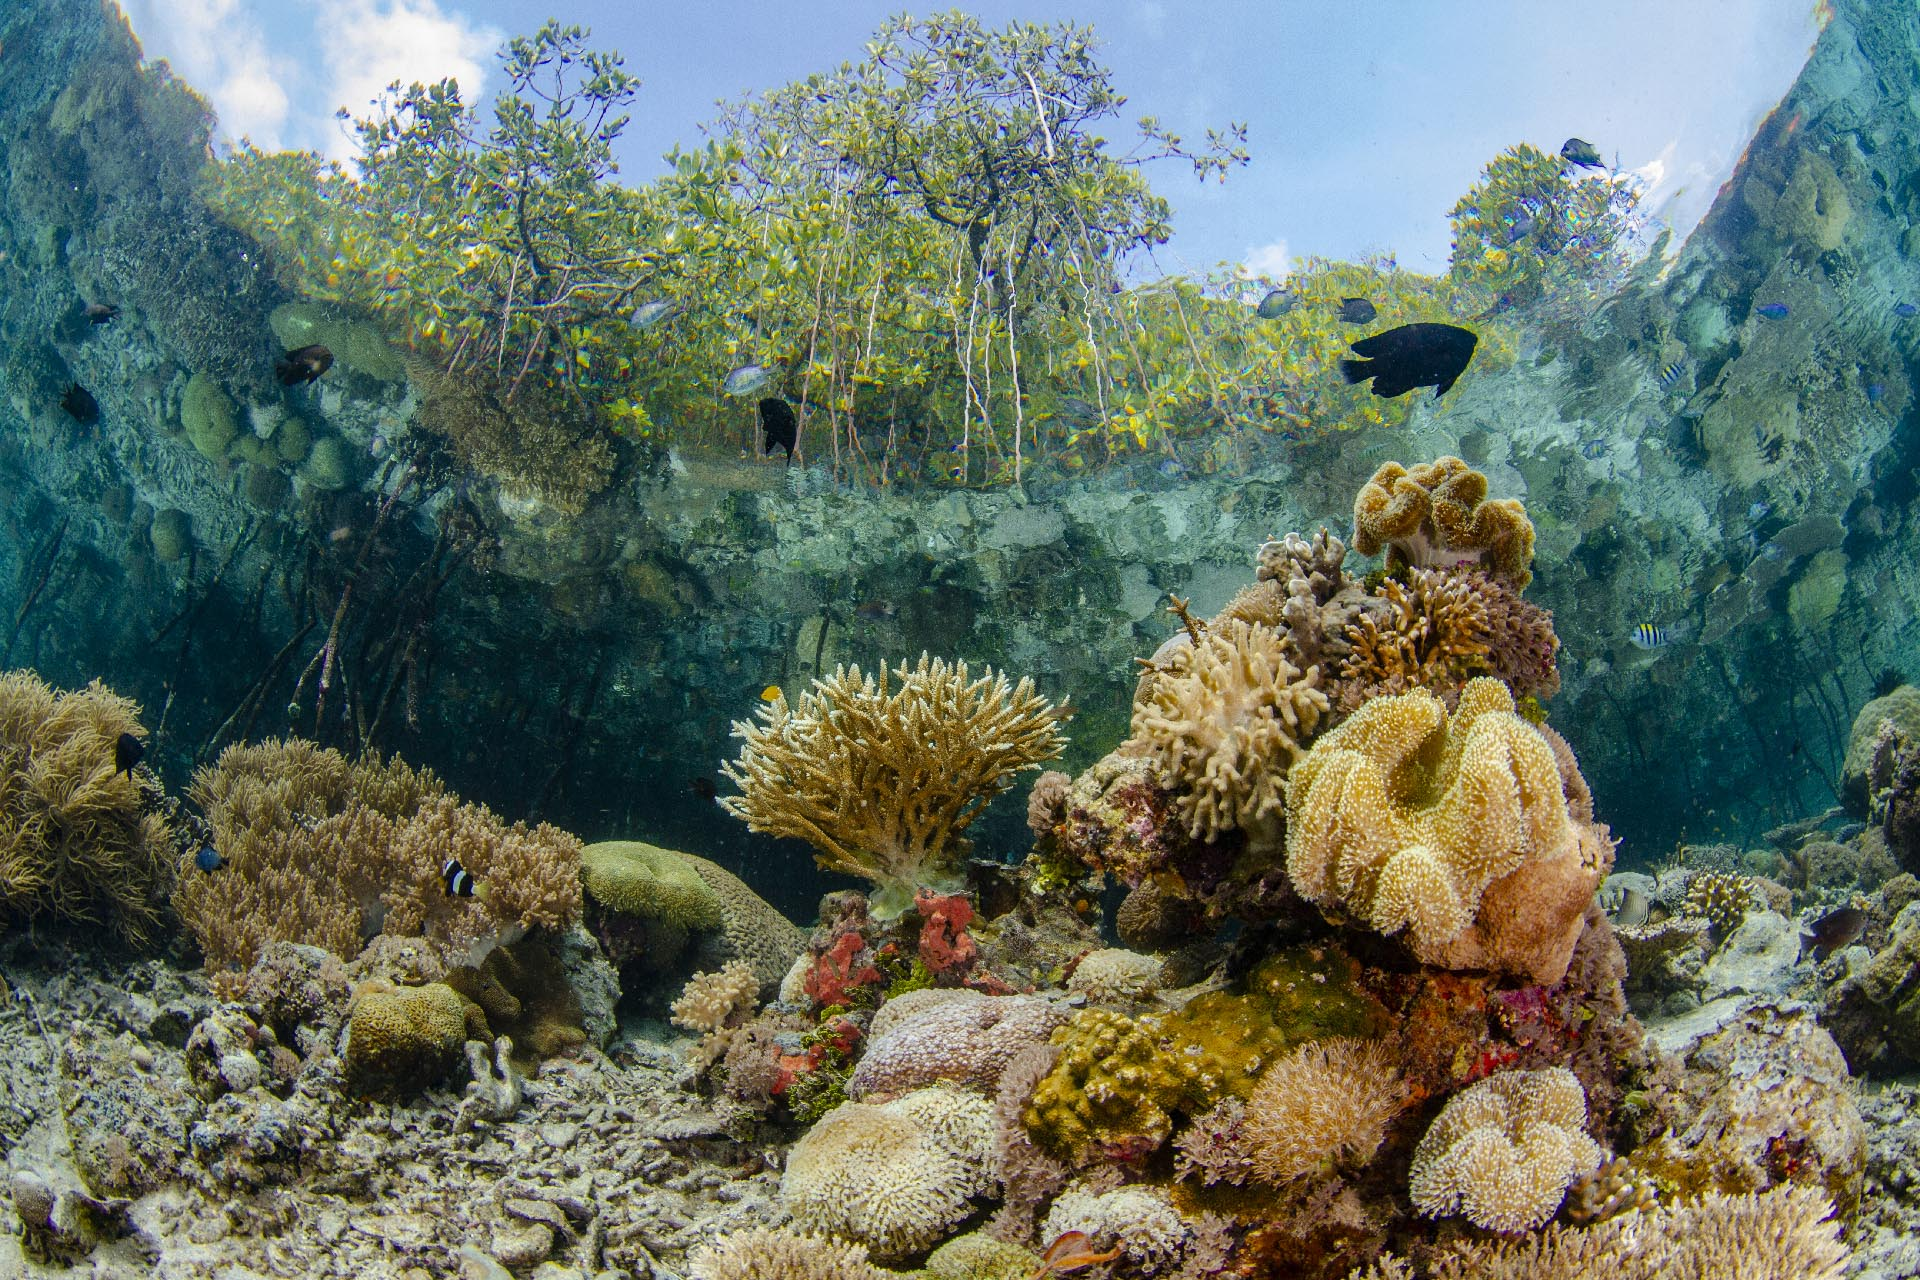 view from beneath mangroves with coral reef